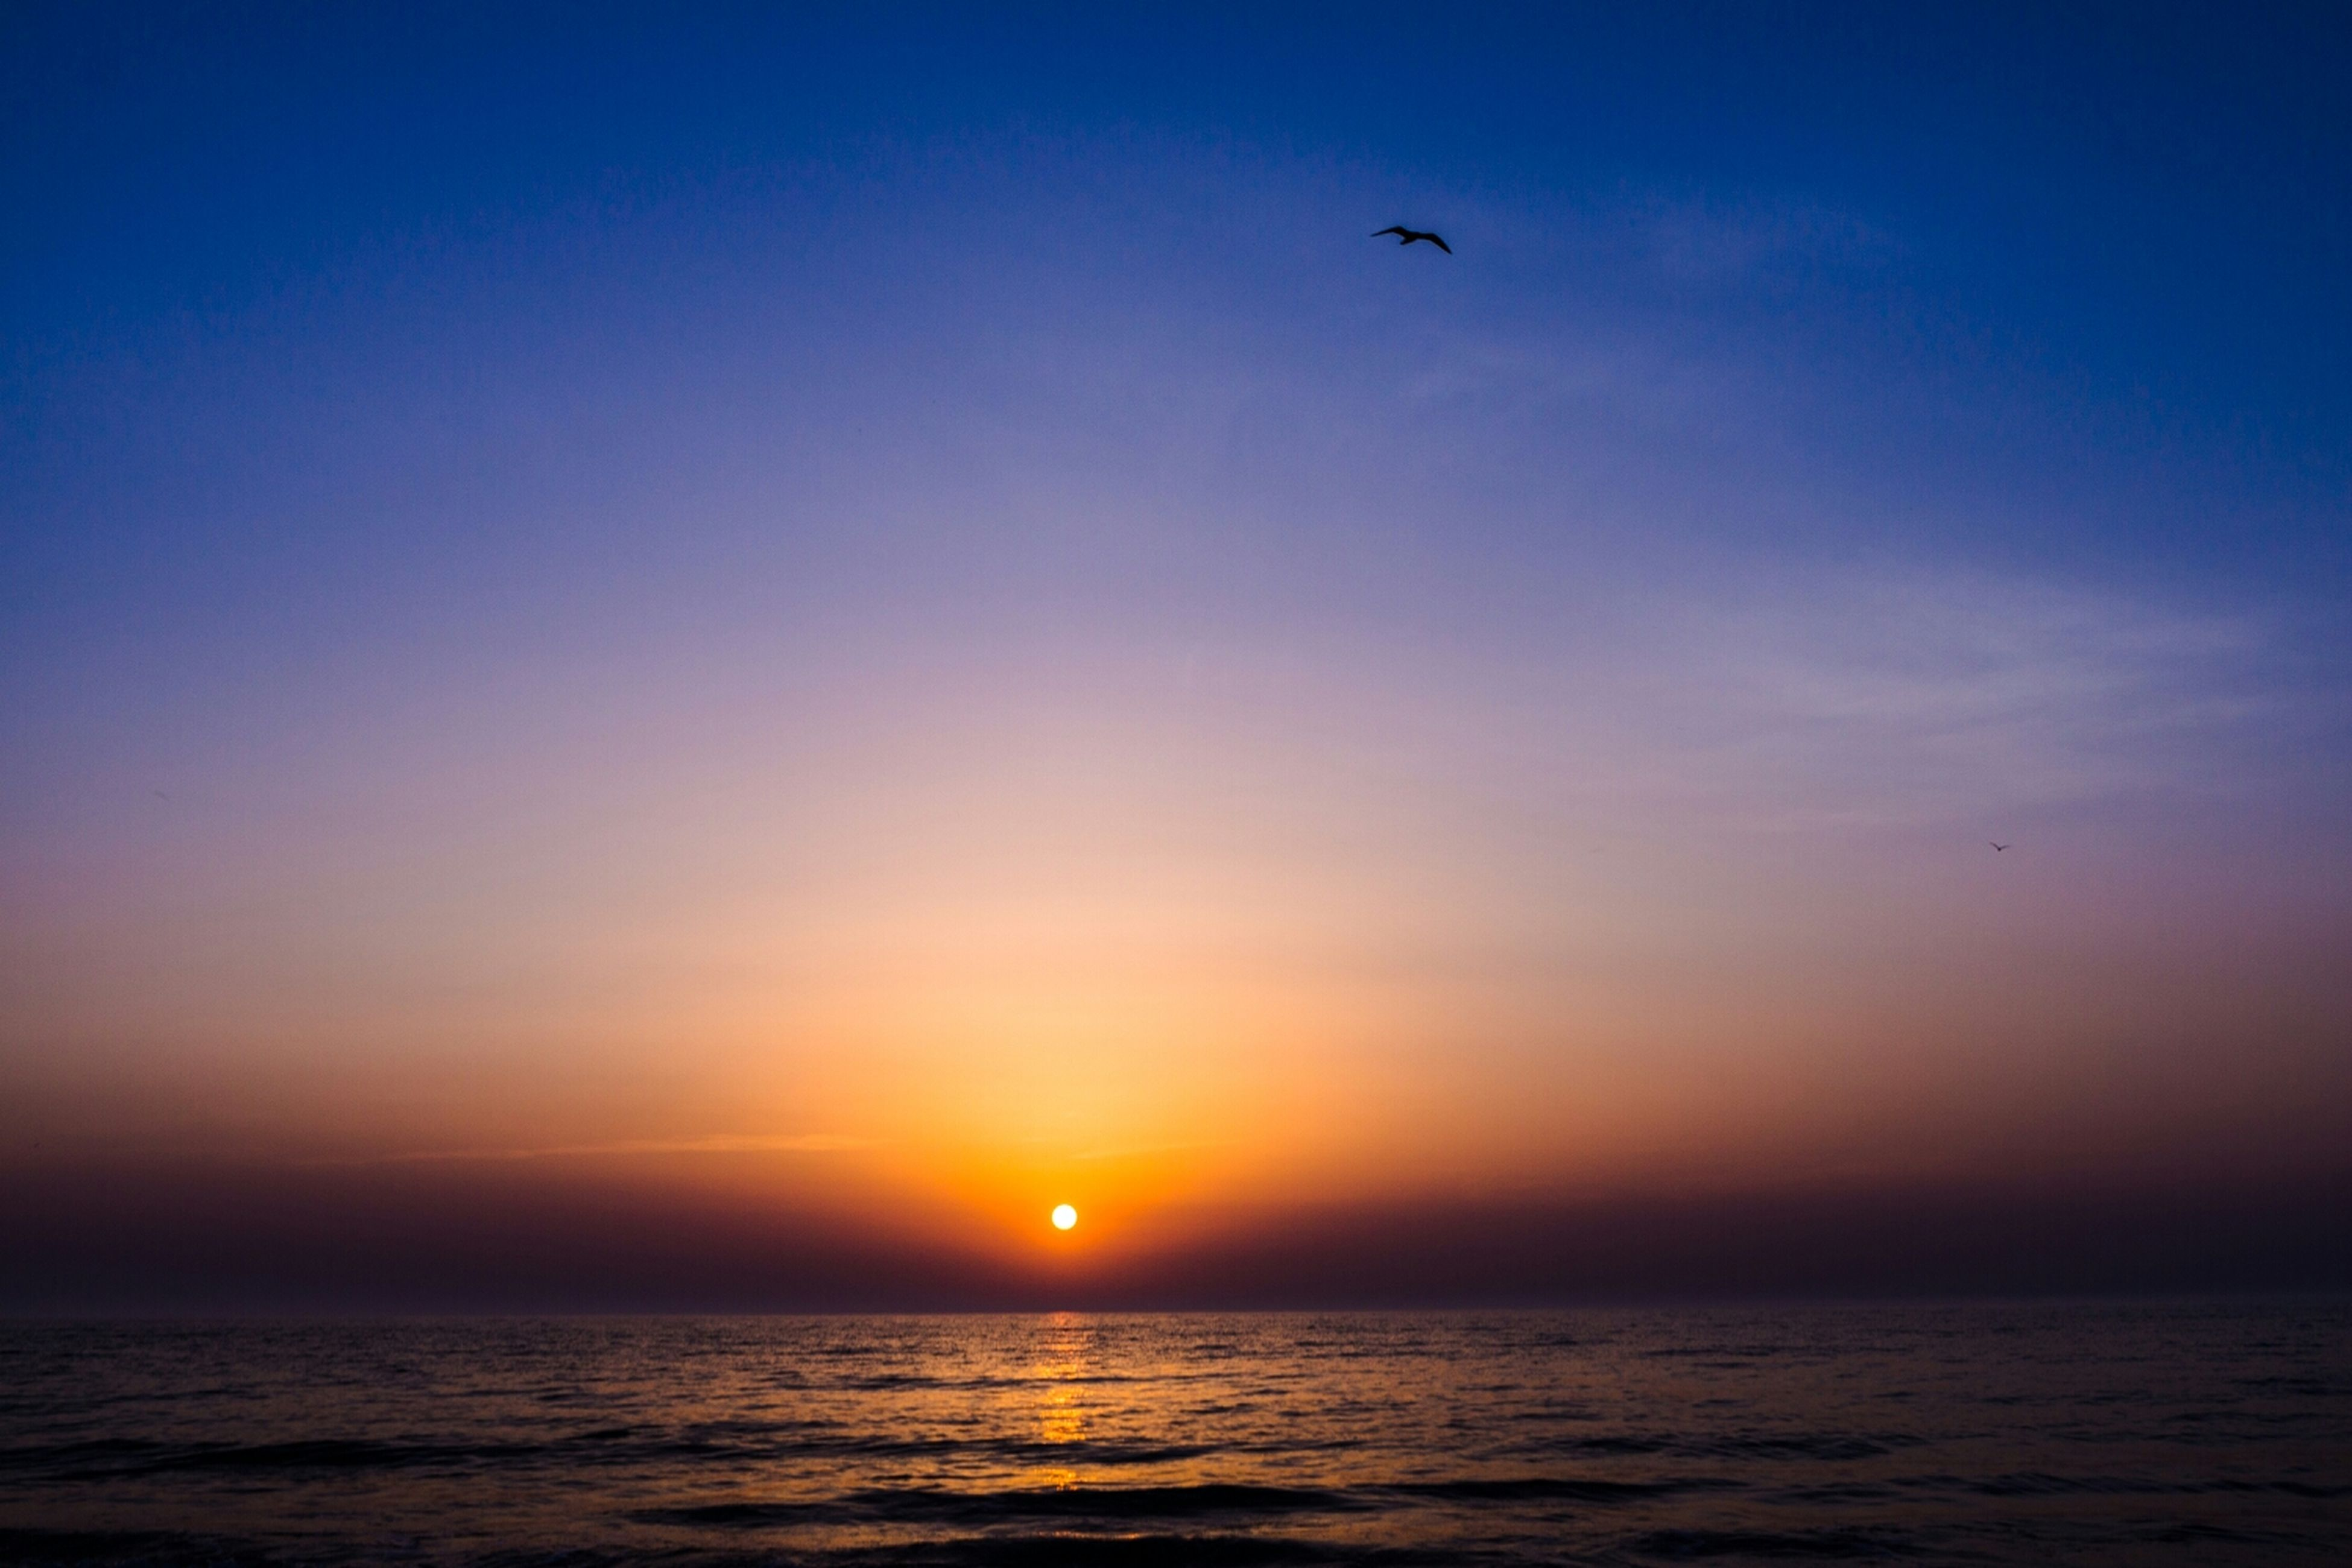 sea, sunset, water, scenics, horizon over water, tranquil scene, sun, waterfront, beauty in nature, tranquility, flying, sky, orange color, idyllic, nature, bird, silhouette, clear sky, copy space, outdoors